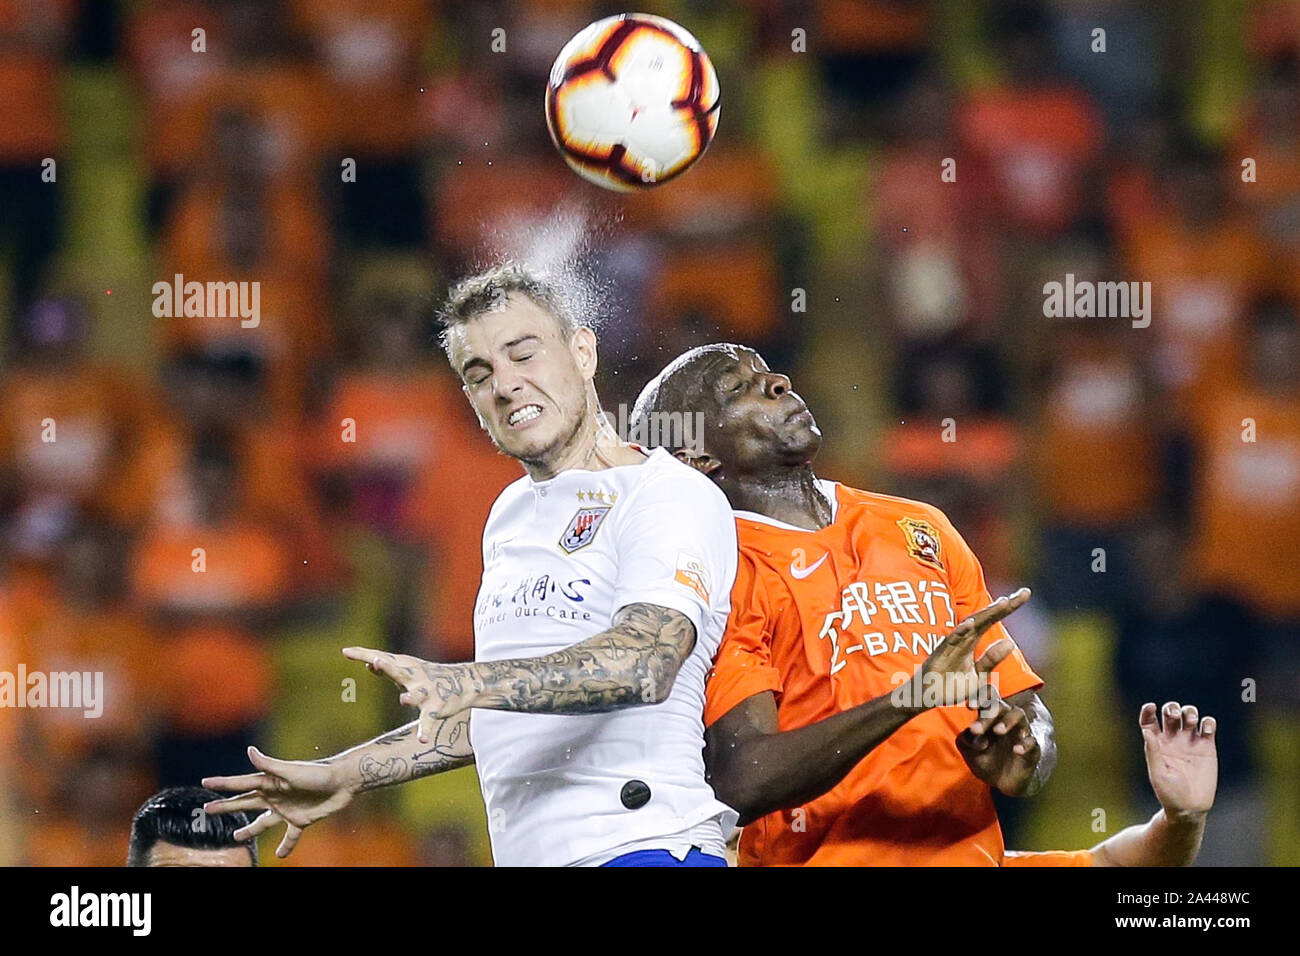 Brazilian football player Roger Krug Guedes, known as Roger Guedes, left, of Shandong Luneng Taishan heads the ball against Cameroonian football playe Stock Photo